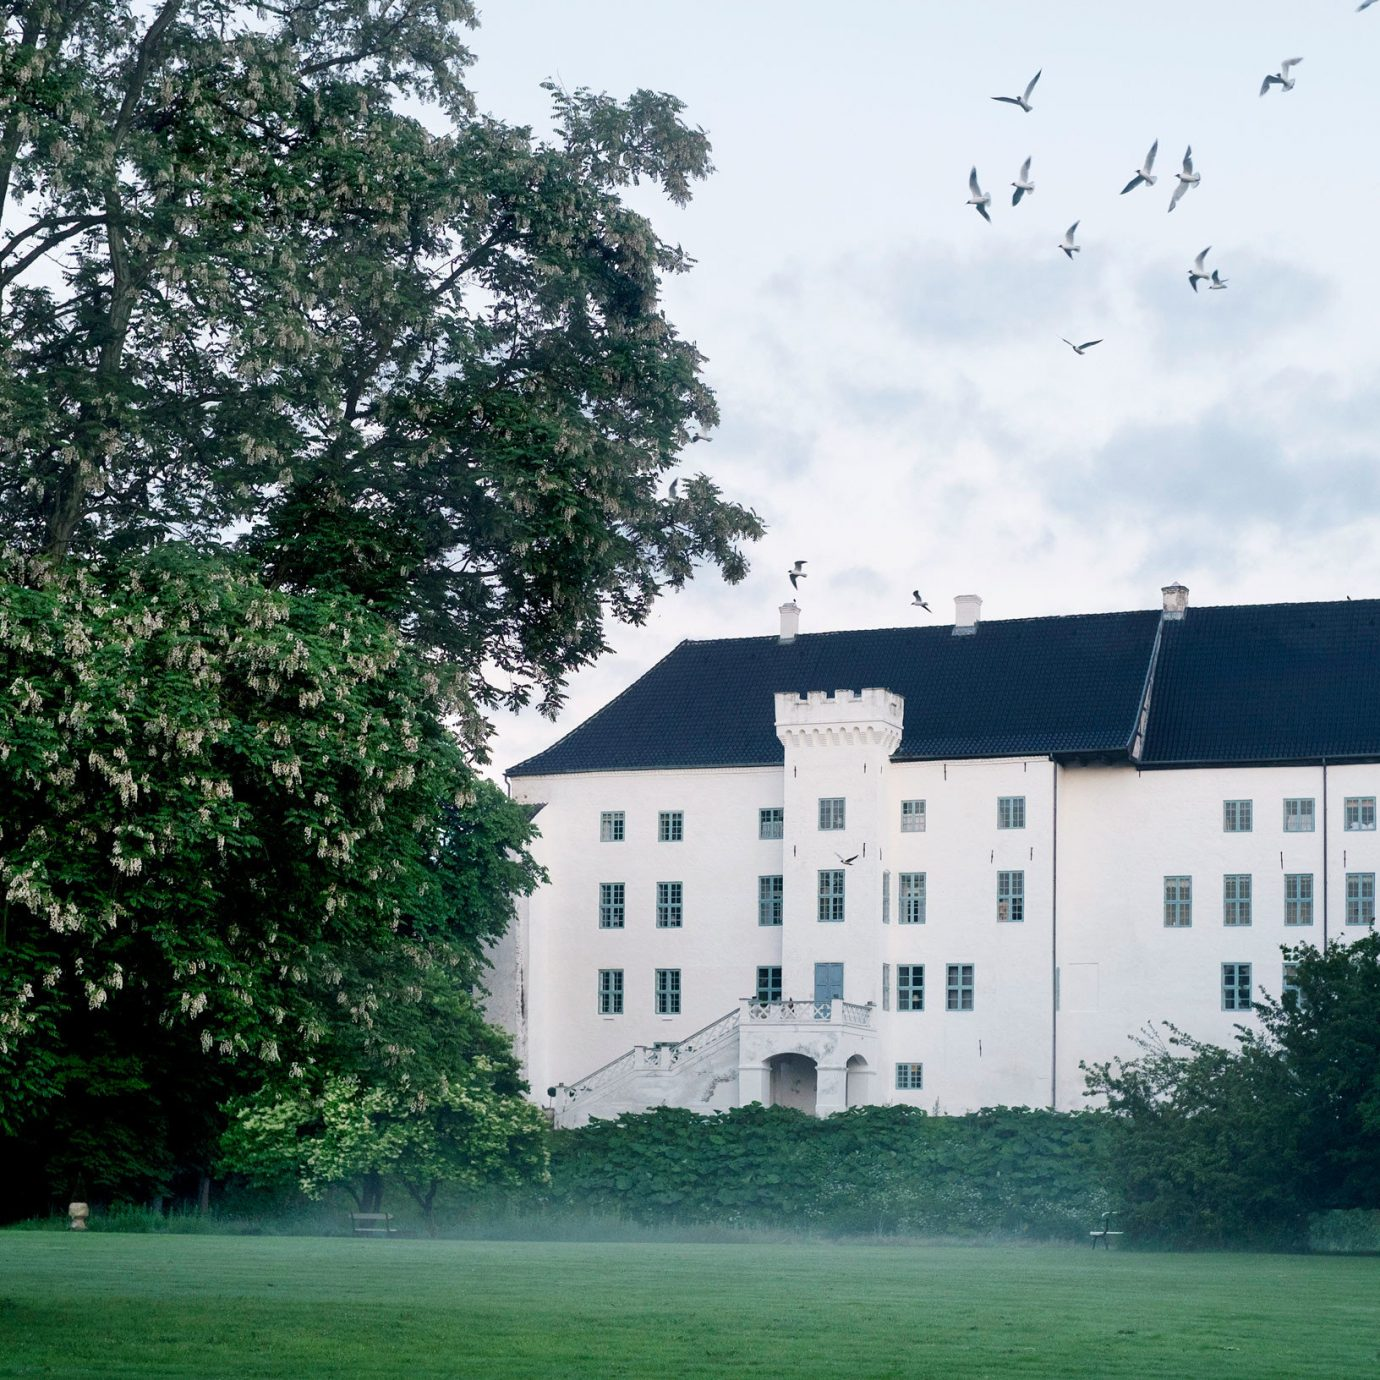 Denmark Finland Hotels Landmarks Luxury Travel Sweden tree outdoor grass house estate property sky Architecture leaf daytime château building home manor house plant facade campus mansion plantation residential